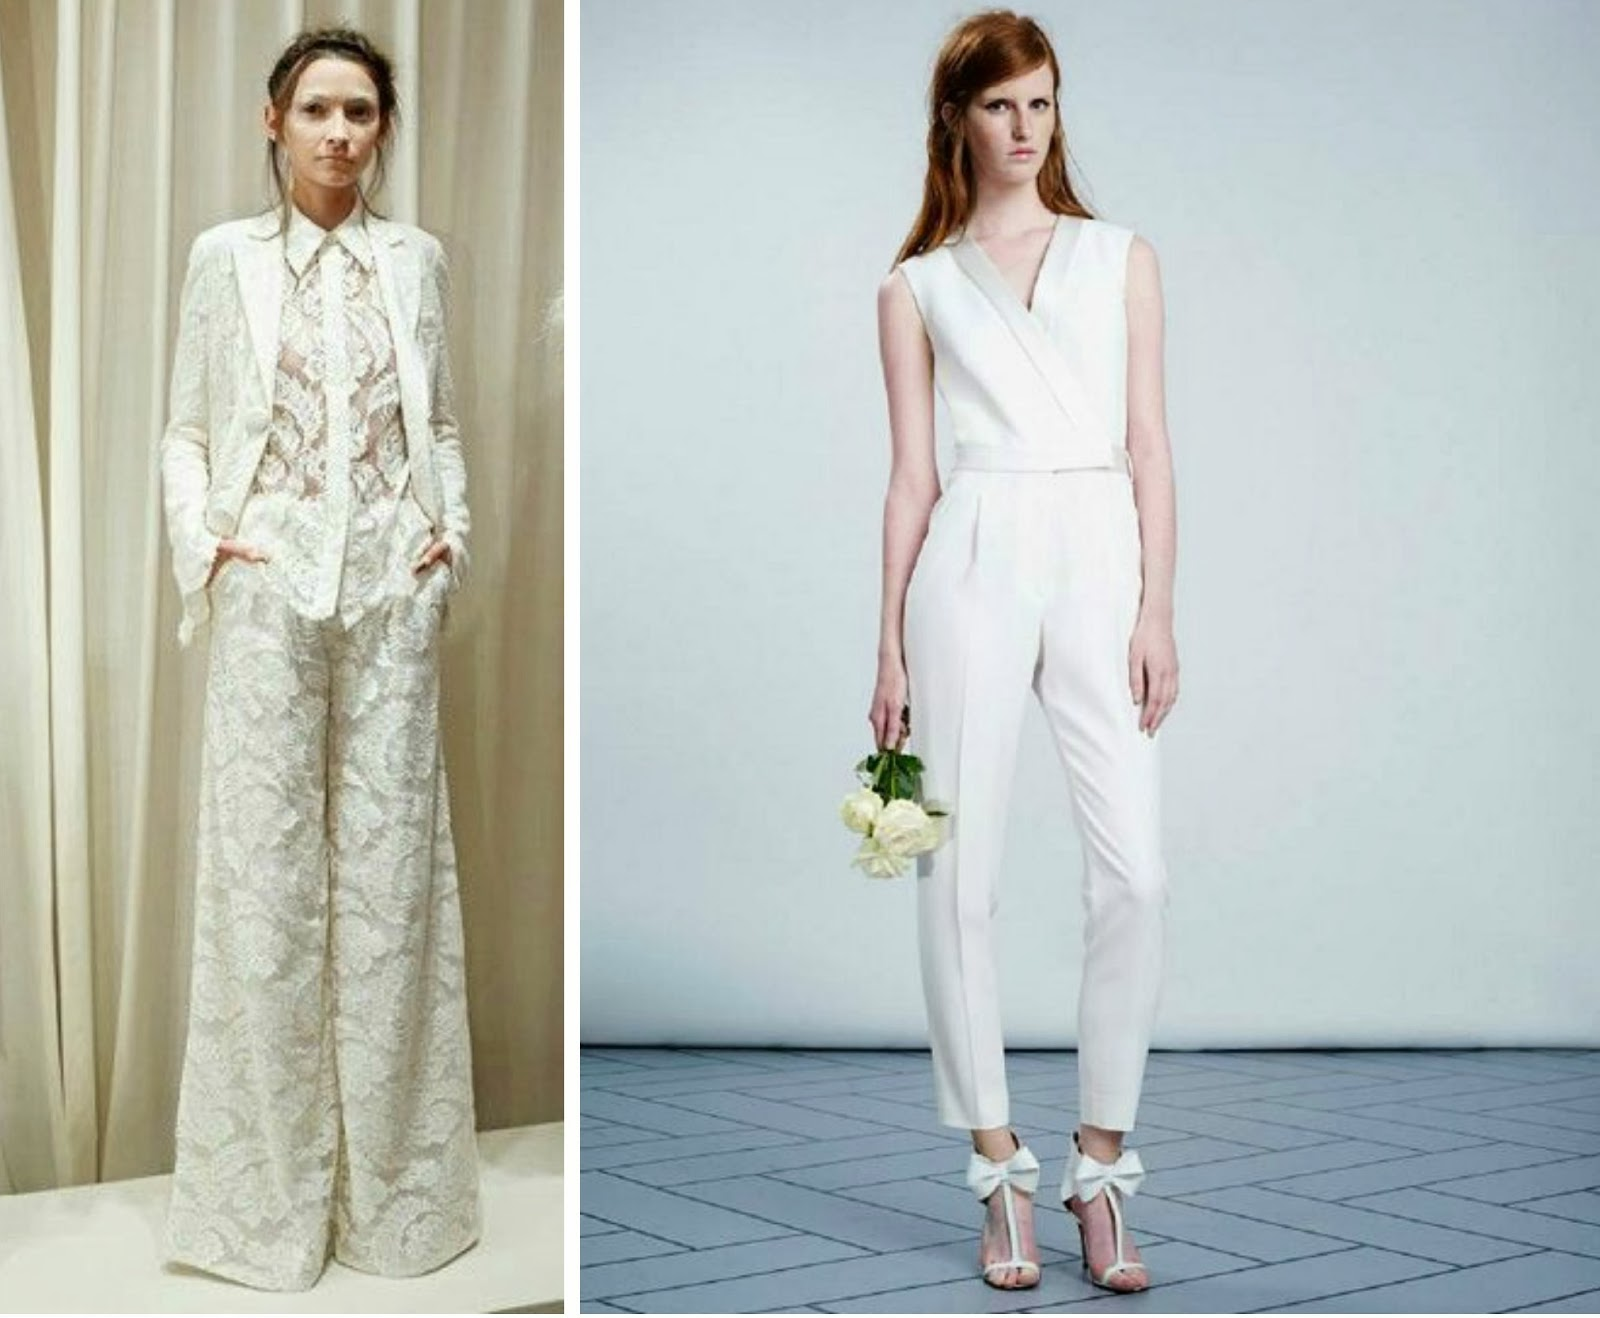 BRIDE CHIC: THE PANTED BRIDE